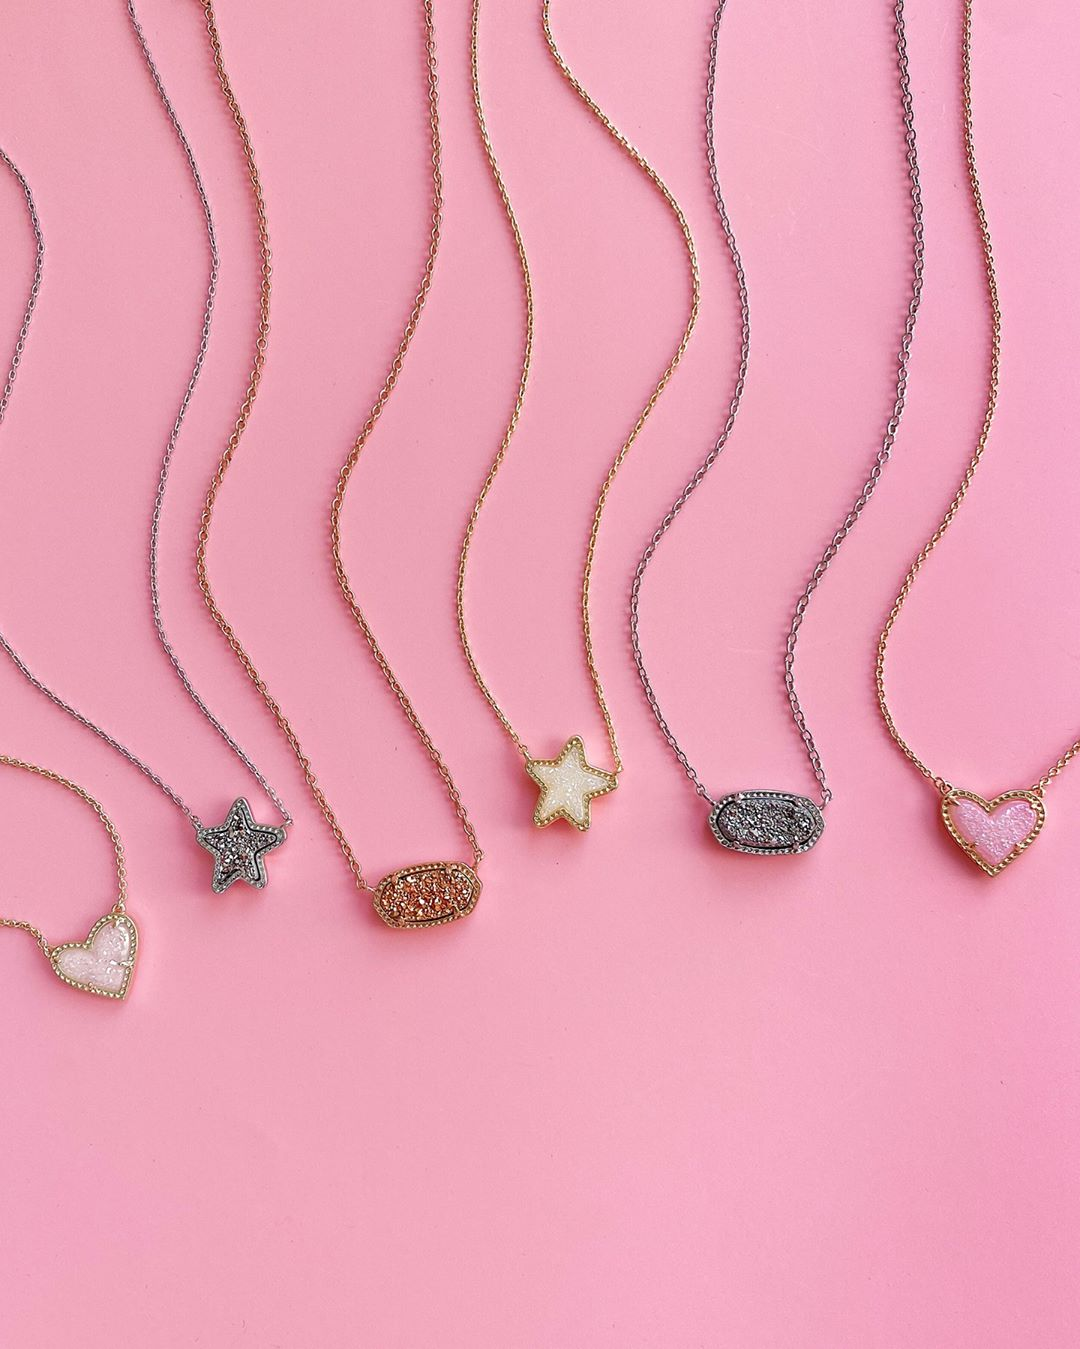 Back-in-Stock Kendra Scott Necklaces